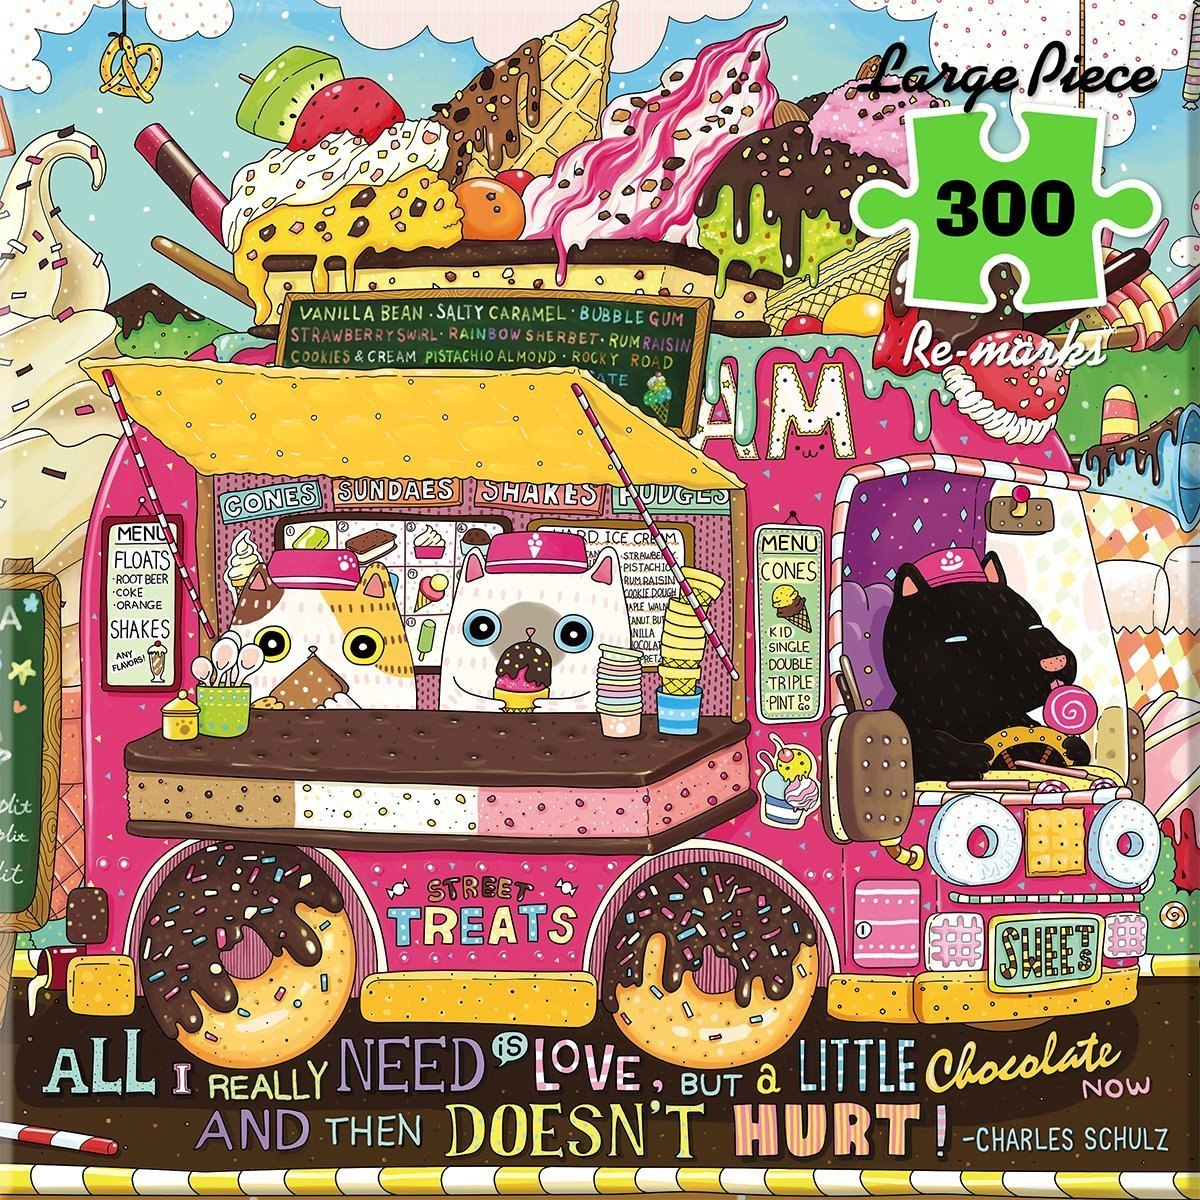 Ice Cream Truck - 300pc Large Format Jigsaw Puzzle By Re-marks  			  					NEW